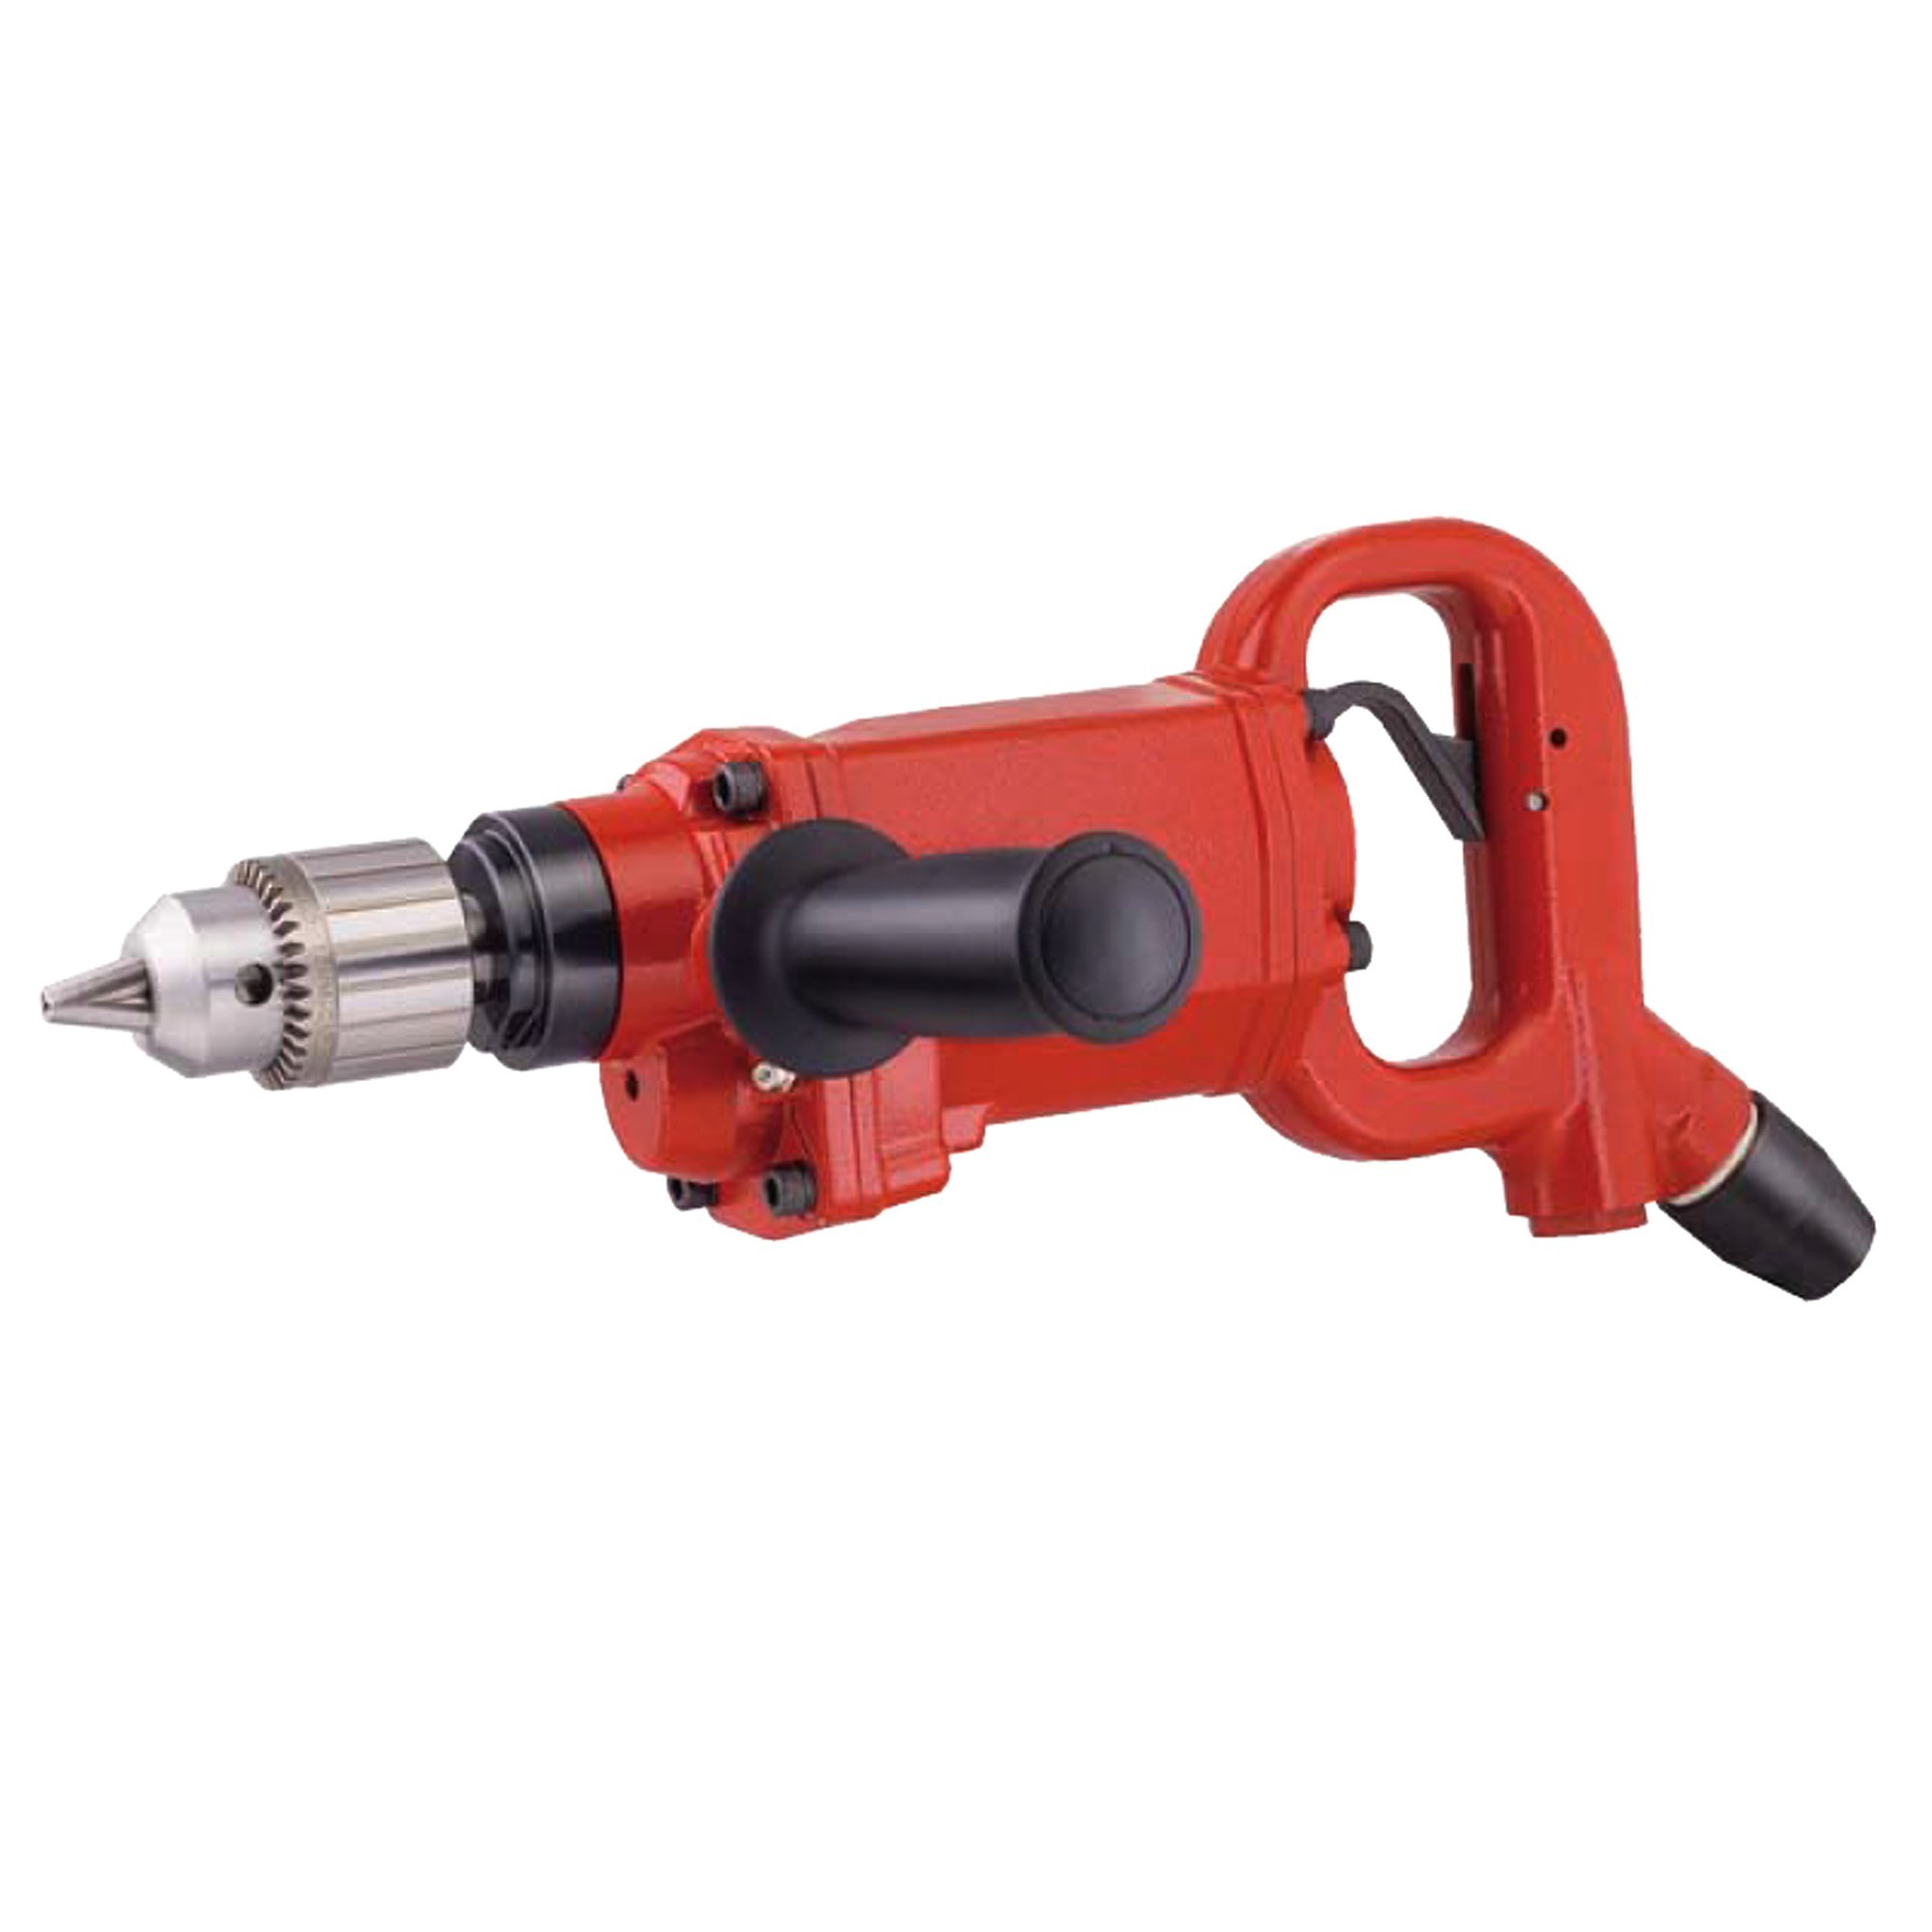 "5/8"" ""D"" Handle Drill 1200 RPM"